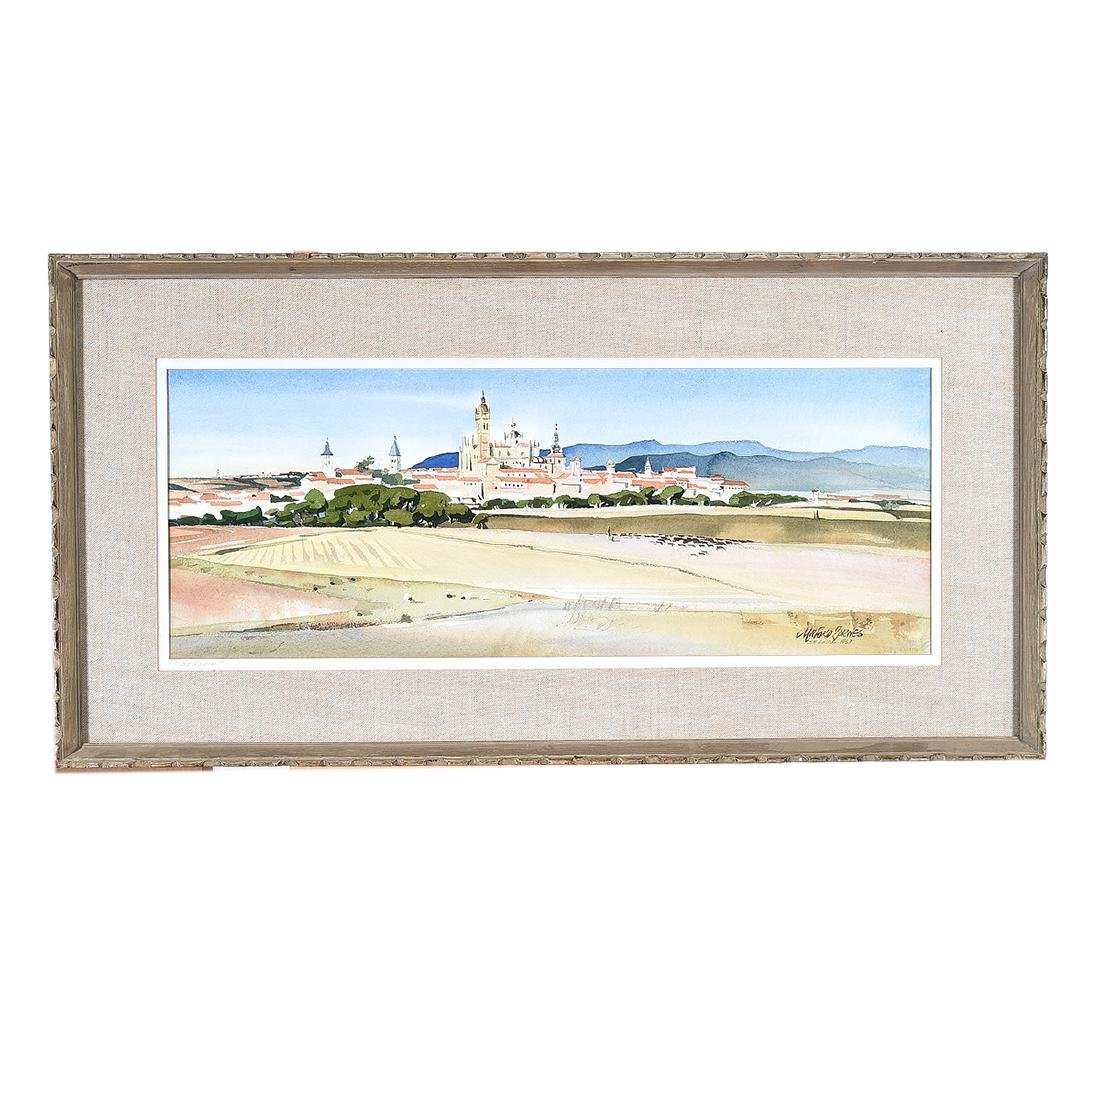 "Milford Zornes ""View of Italian City"" watercolor - 4"